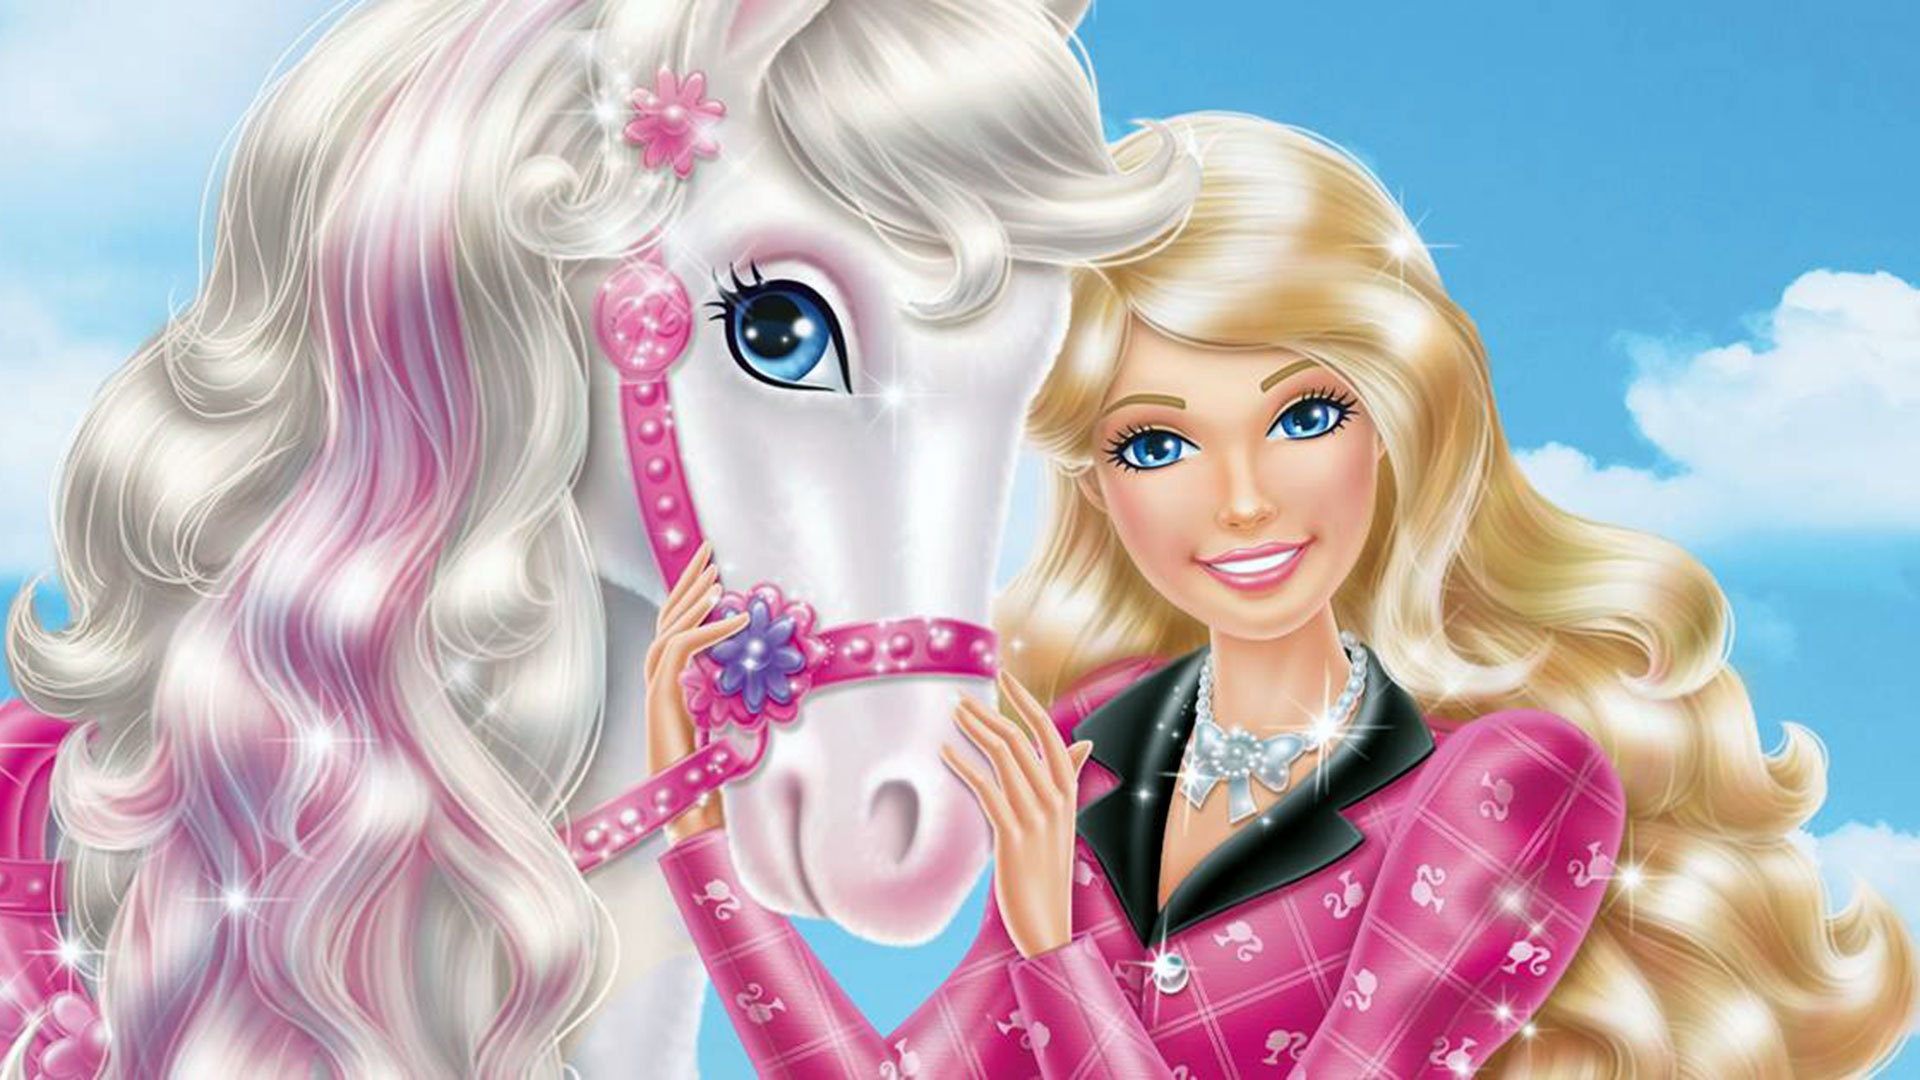 Download Barbie Wallpapers